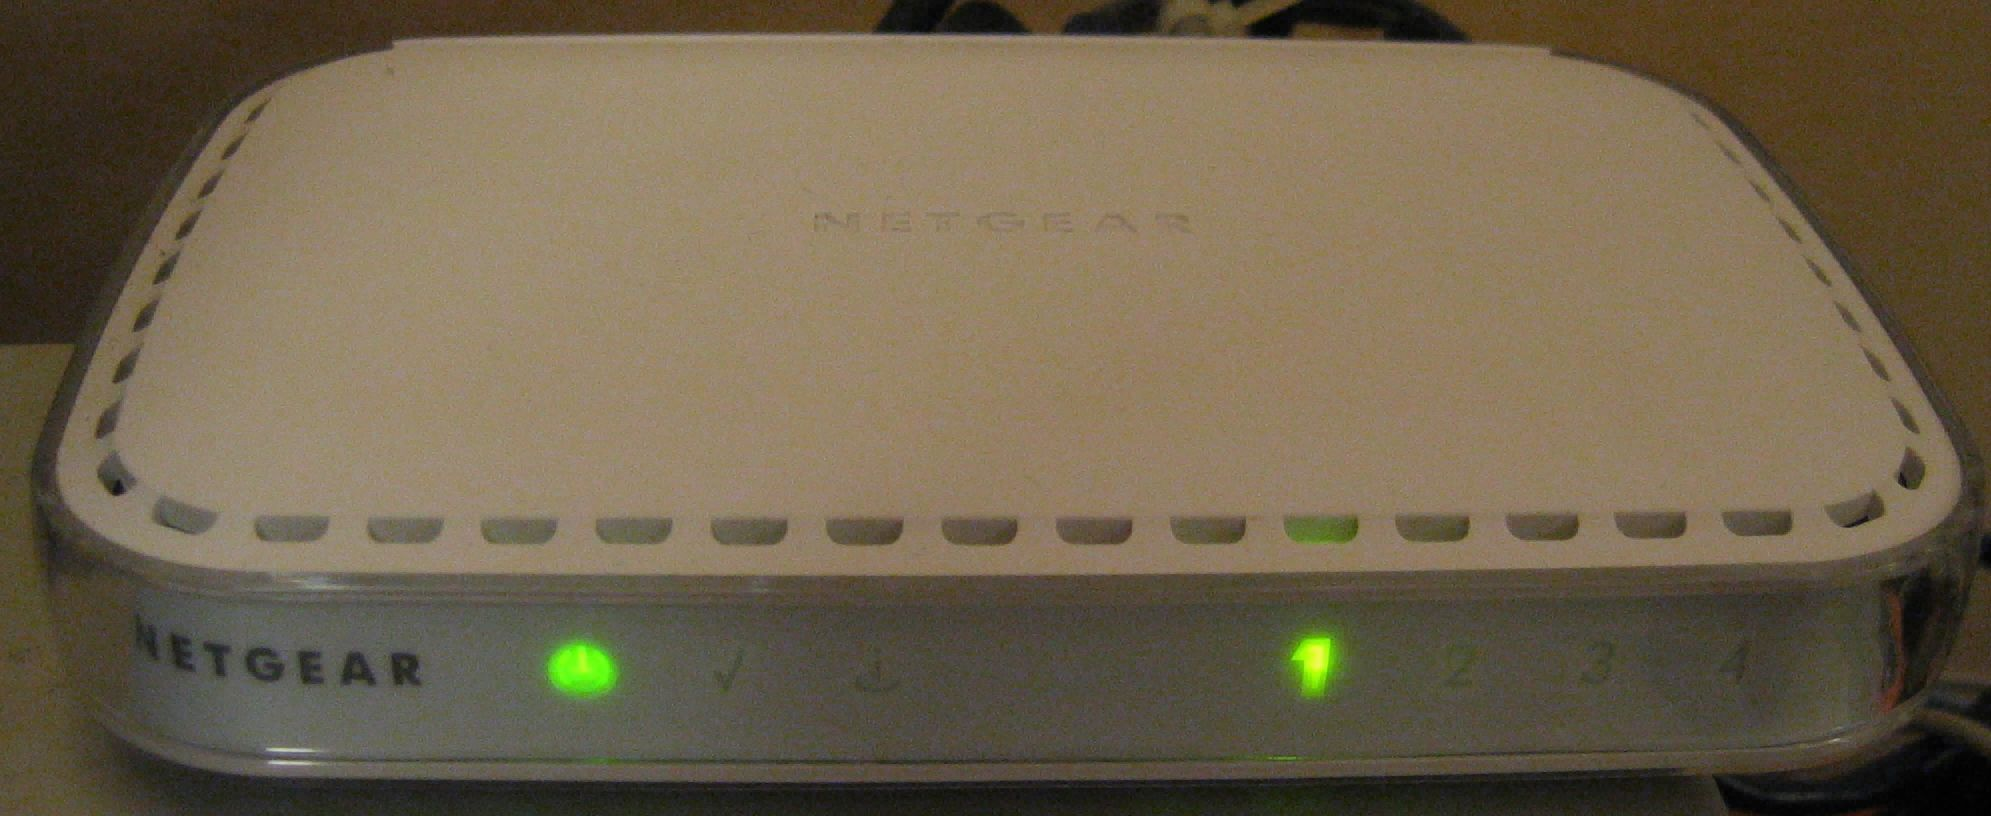 how to turn off wps on netgear router